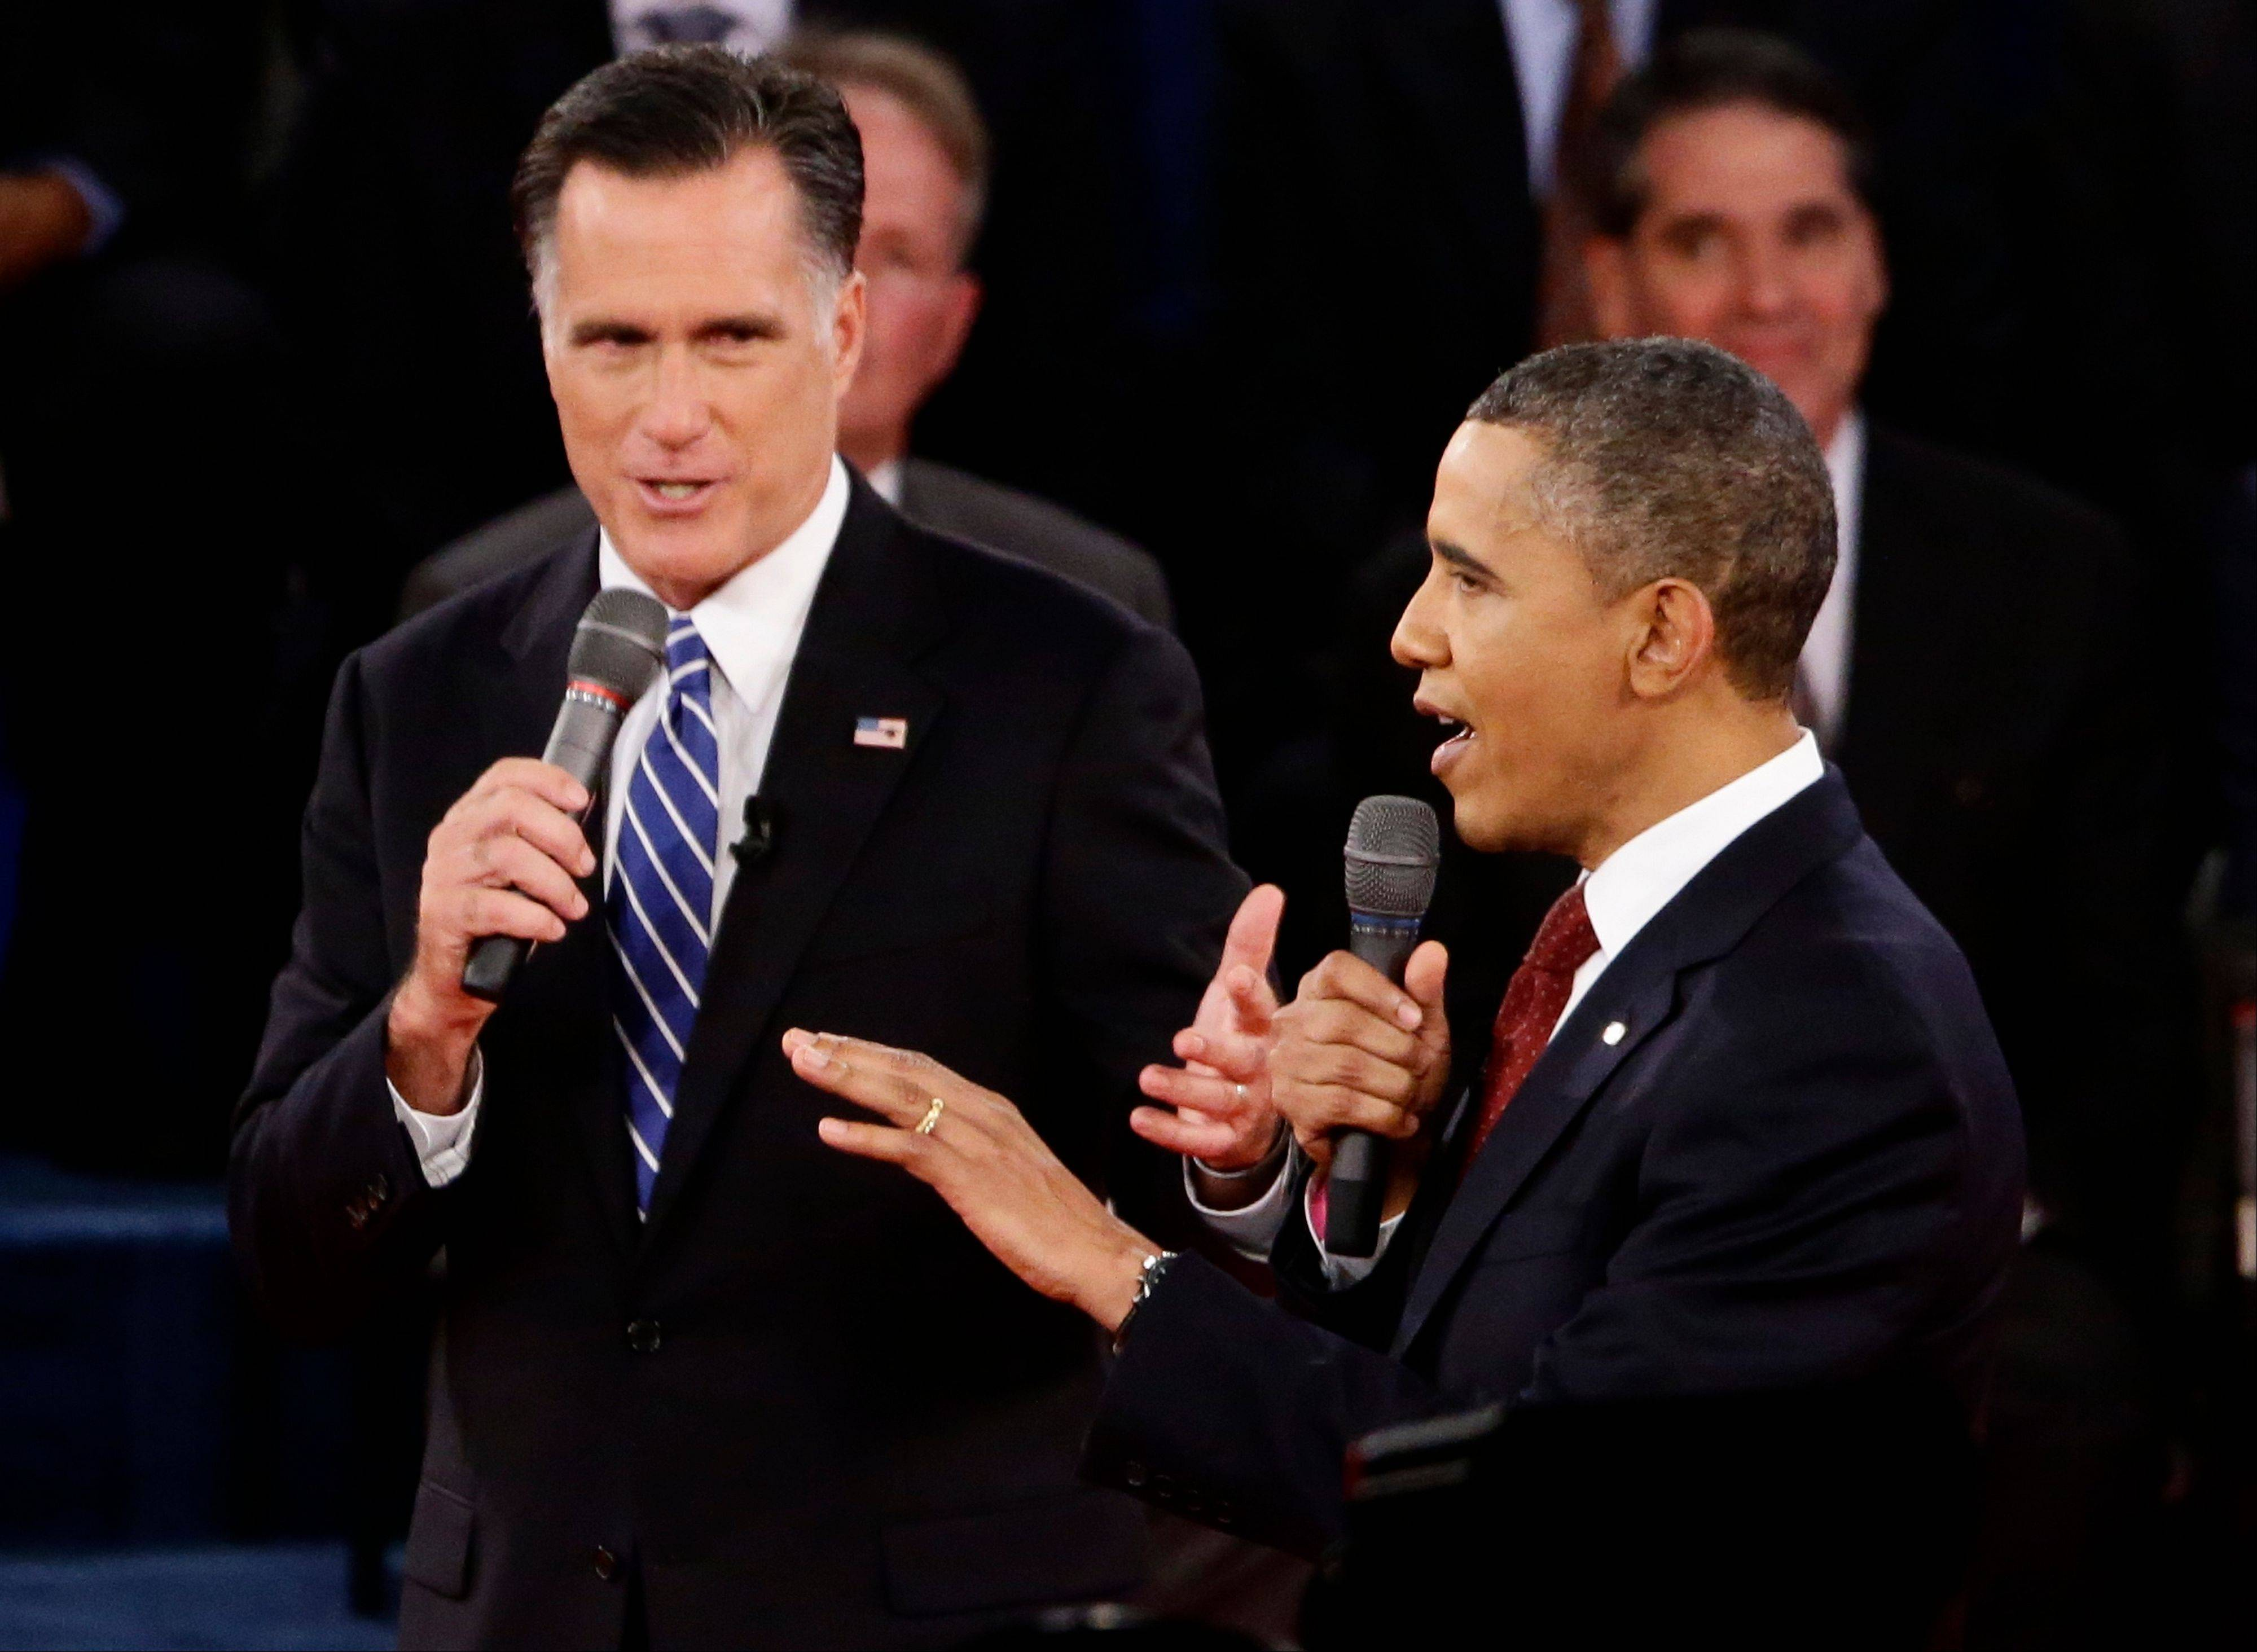 President Barack Obama and Republican presidential candidate and former Massachusetts Gov. Mitt Romney speak during the second presidential debate at Hofstra University in Hempstead, N.Y., Tuesday.